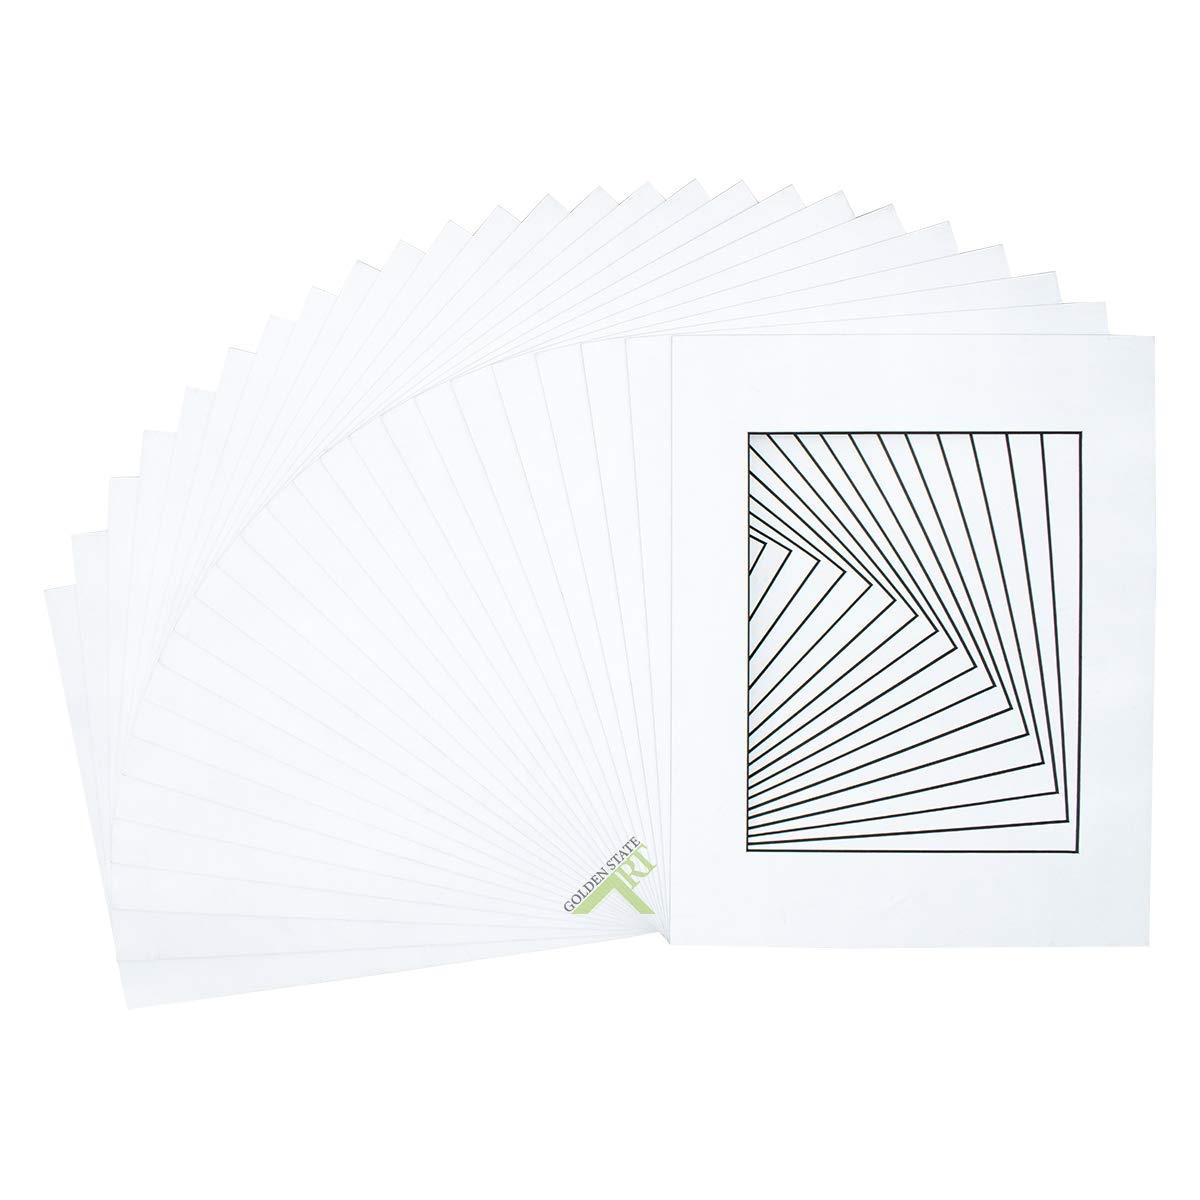 Golden State Art, Acid free, Pack of 10 11x14 White Mats Mattes with Black Core Bevel Cut for 8x10 Photo + Backing + Bag